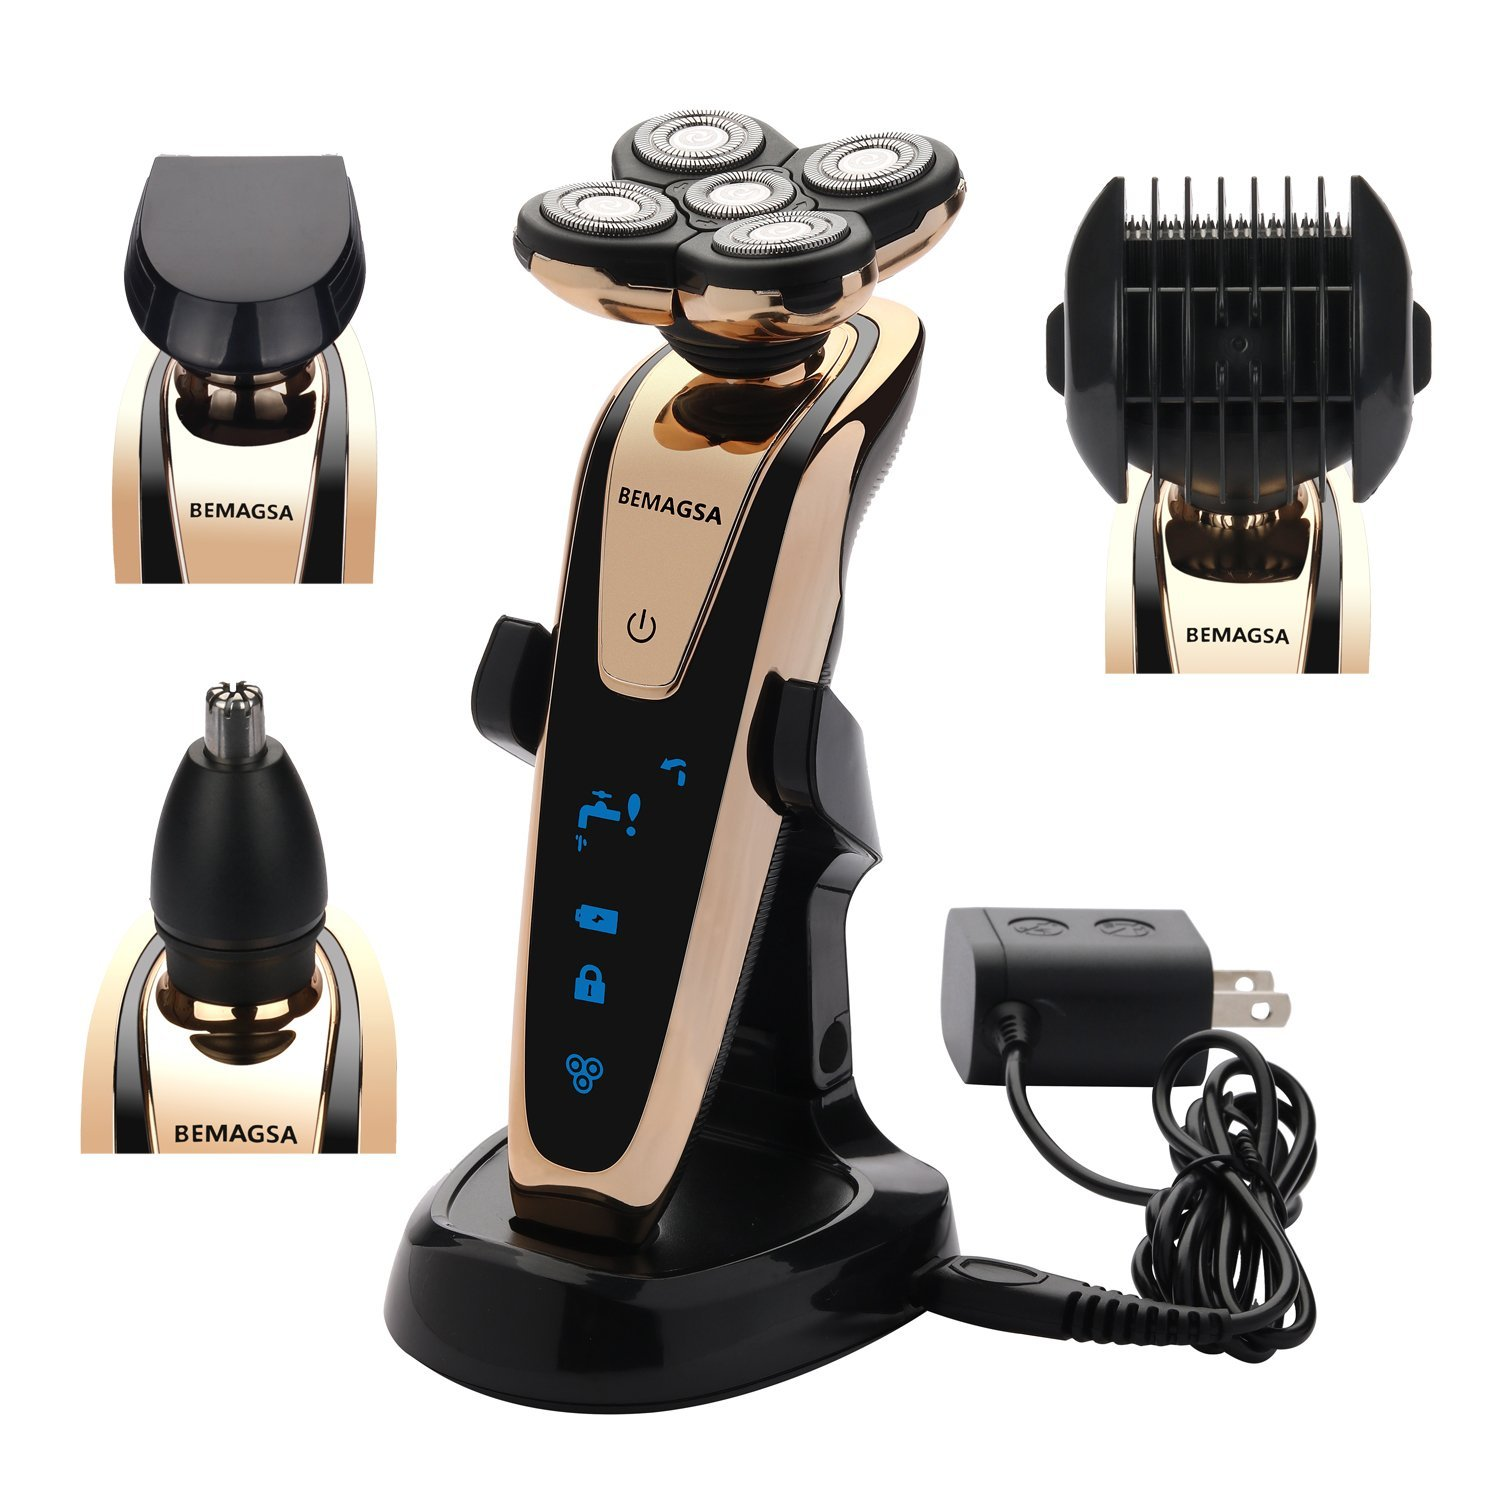 BEMAGSA Electric Shaver 5D Headed Flex Wet and Dry Waterproof Electric Razor Rotary Shaver for Men,4-in-1,1280